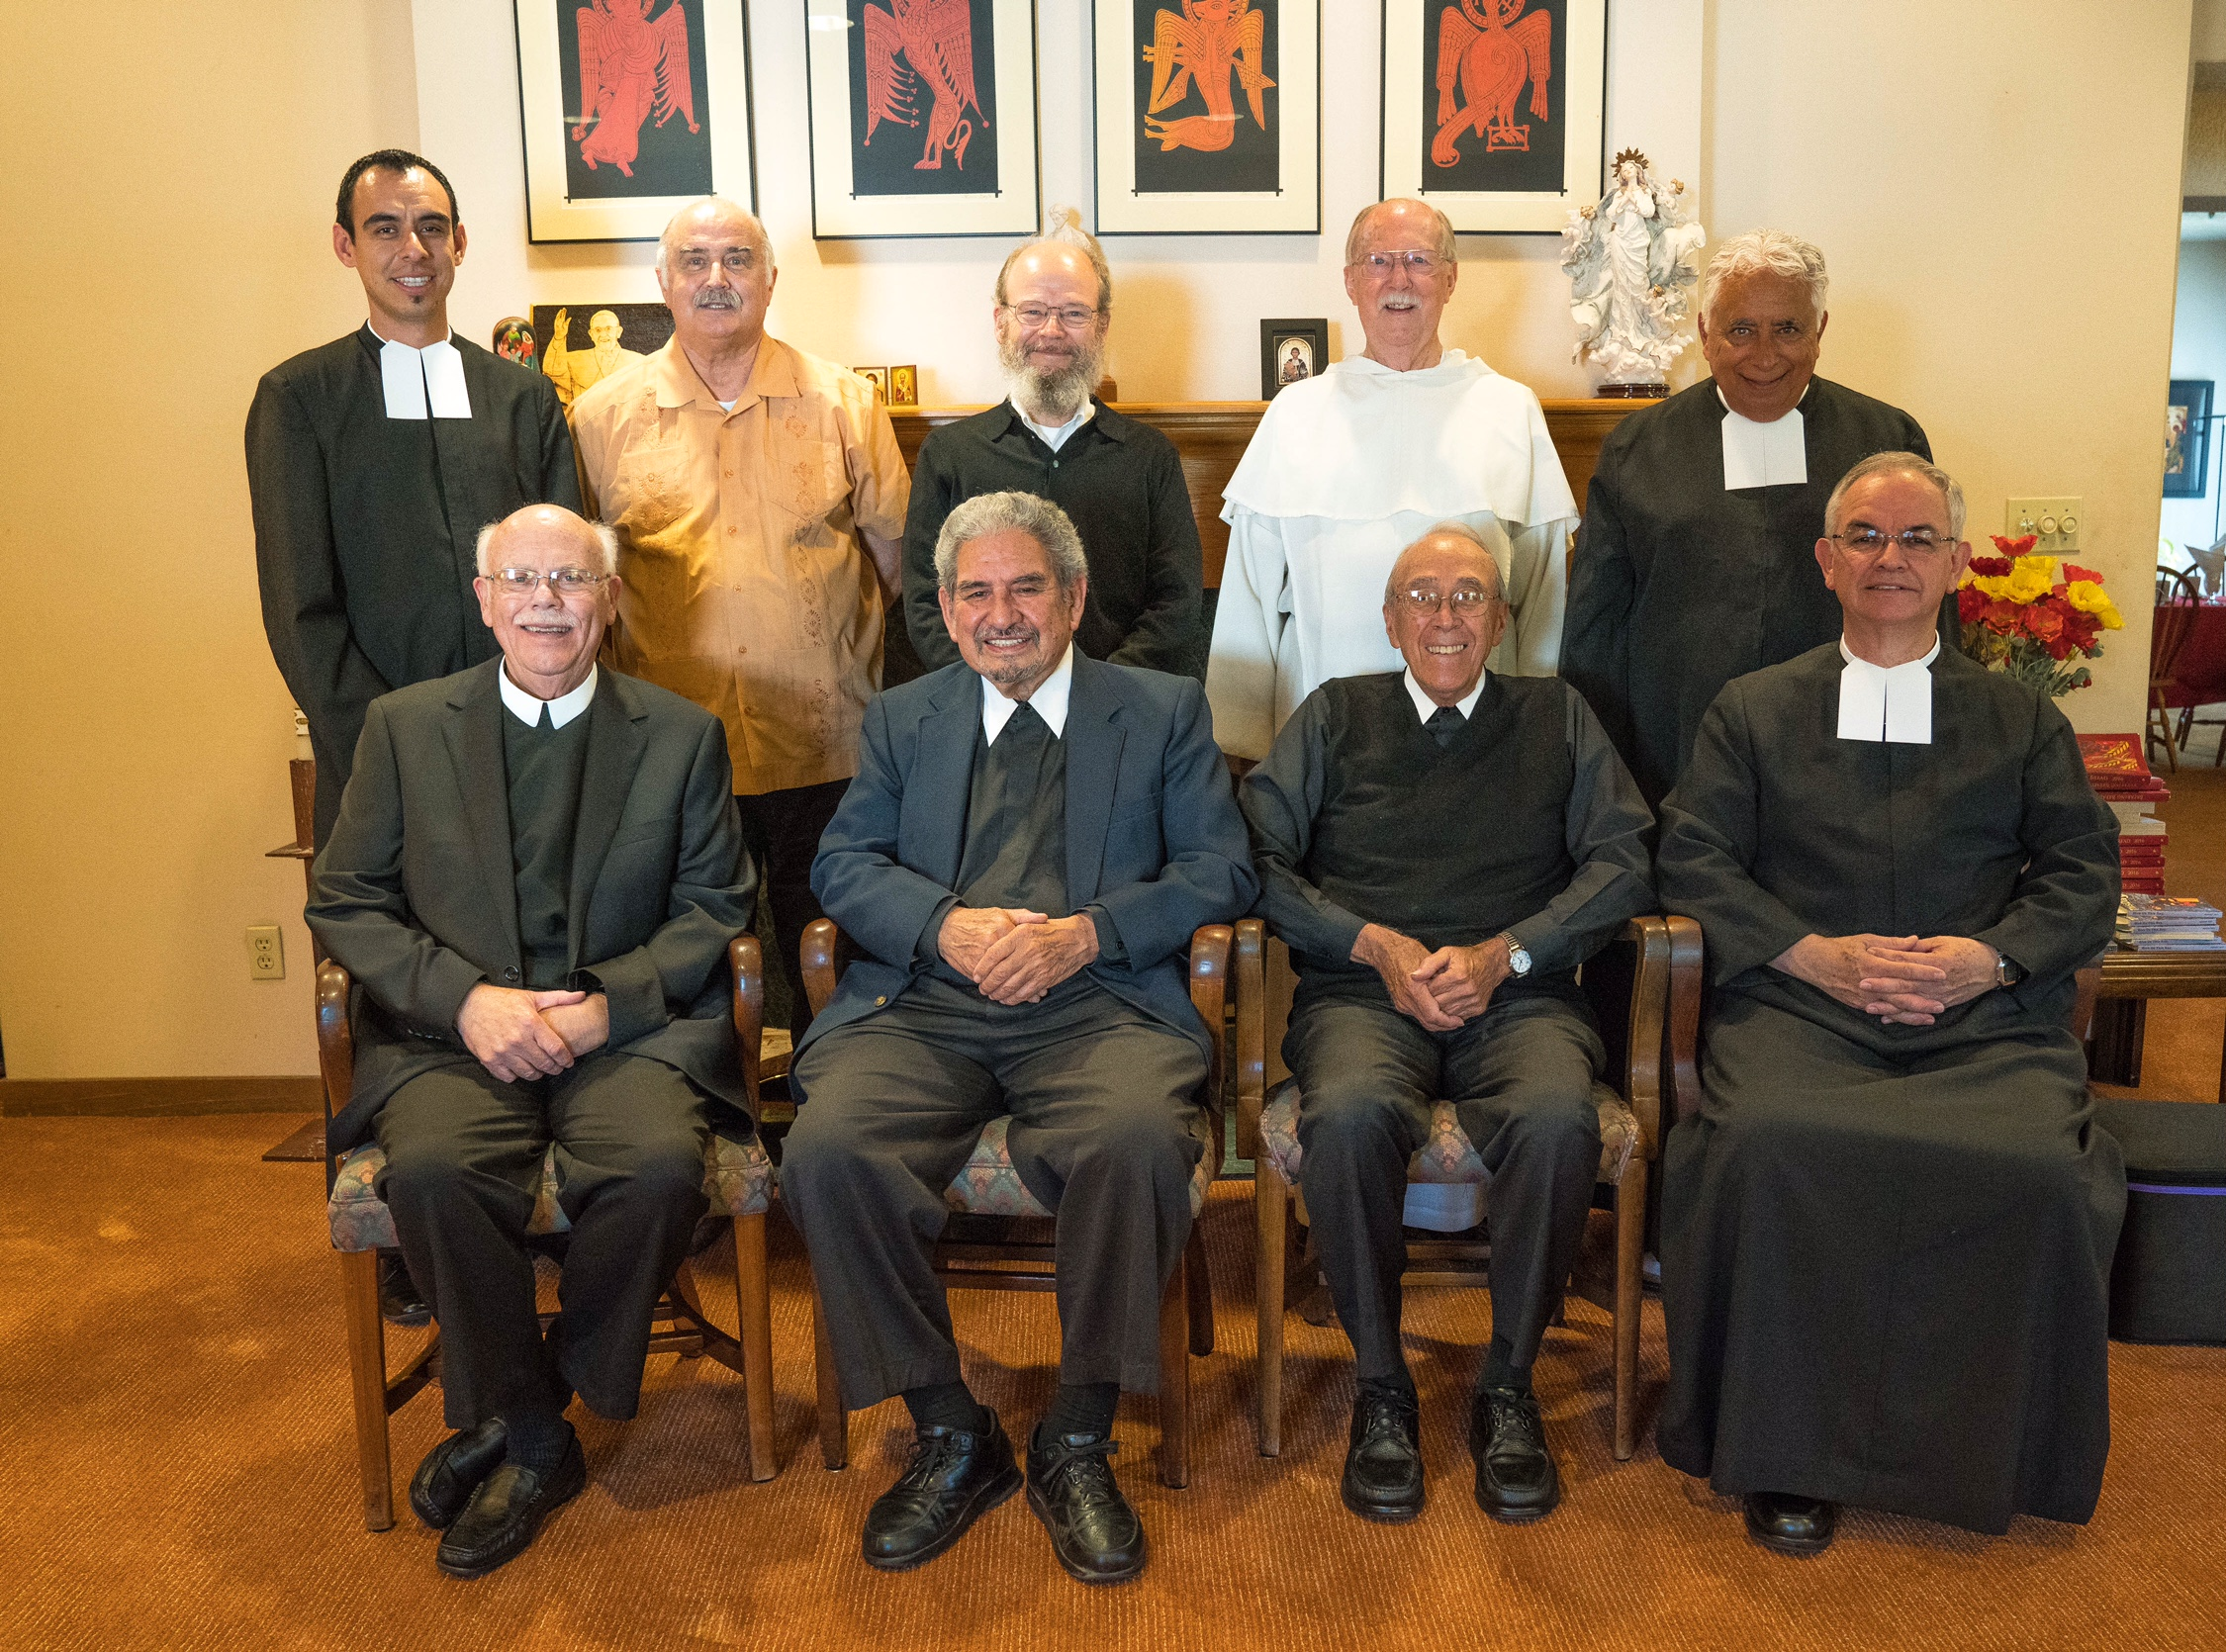 Alemany Christian Brothers' Community- Back Row From Left: Br. Christopher Patino, Br. Michael Meister, Br. Charles Hilken (Director), Fr. John Morris, OP (Chaplain), Br. Richard Orona; Front Row From Left: Br. Stan Sobczyk, Br. Camillus Chavez, Br. Bernard LoCoco, Br. Michael Avila